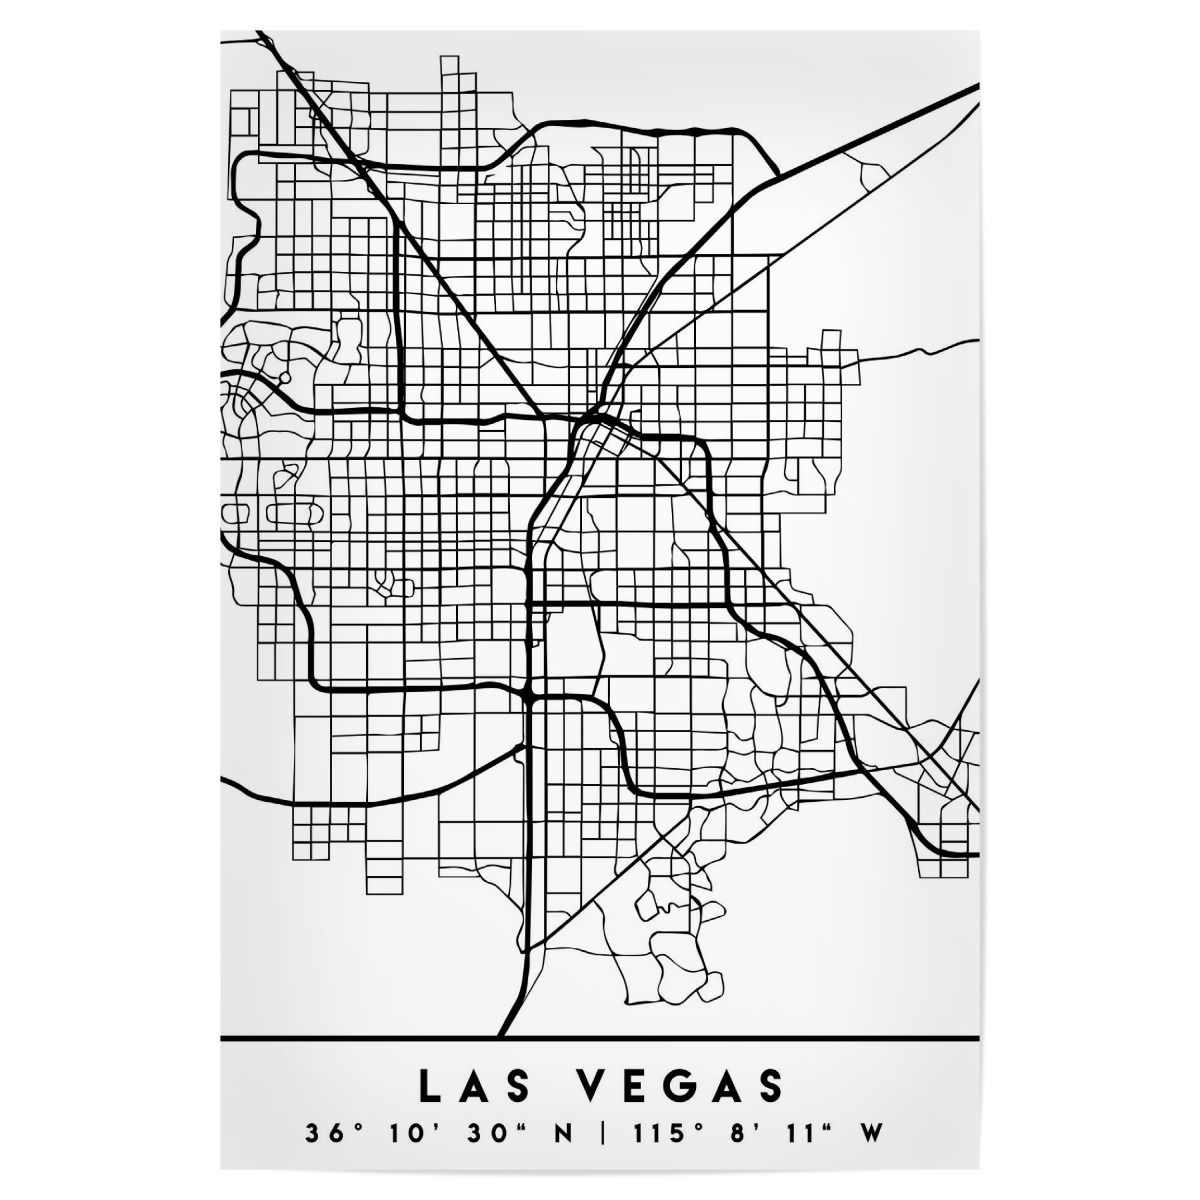 LAS VEGAS NEVADA BLACK CITY MAP als Poster bei artboxONE kaufen